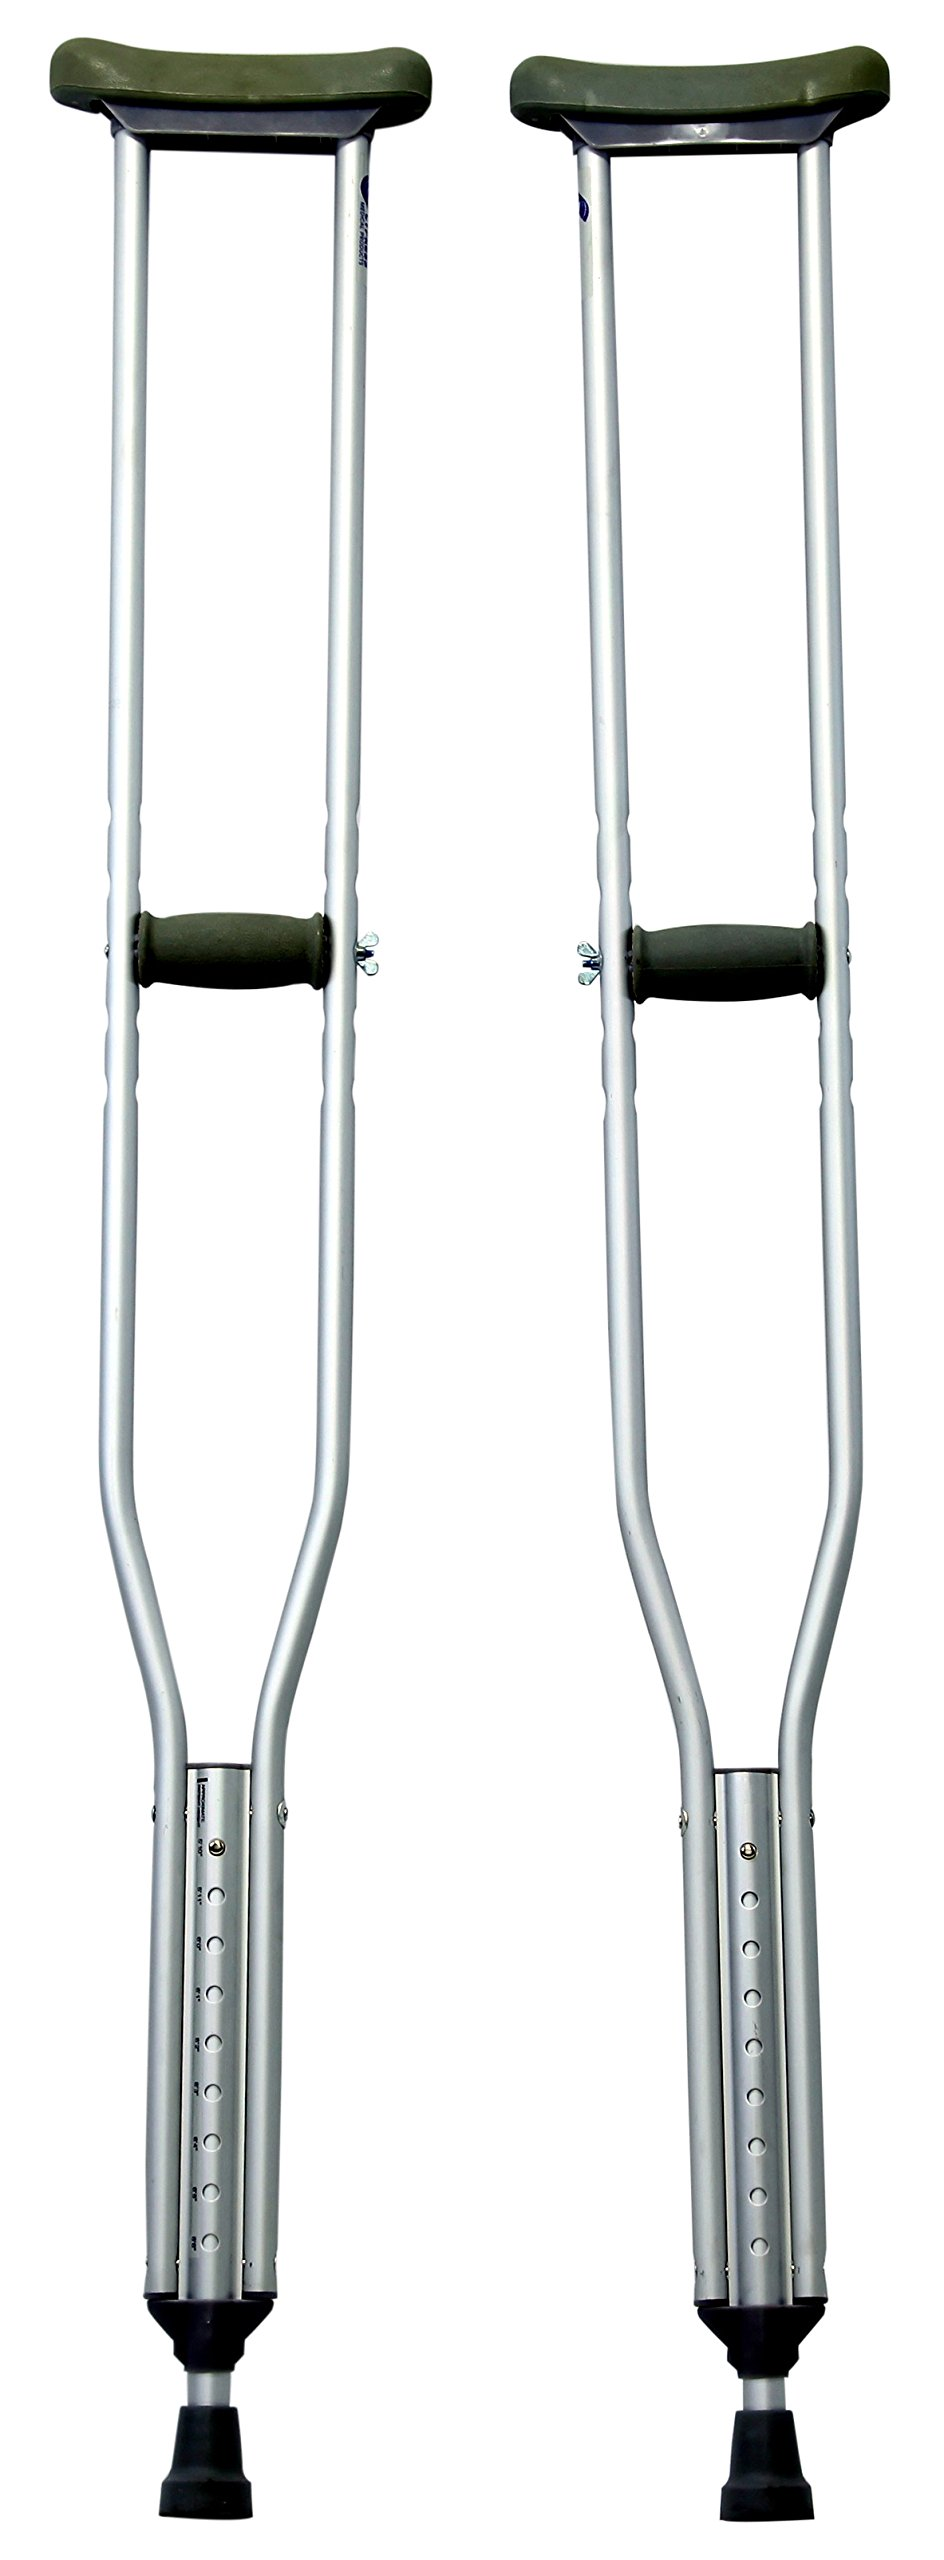 Karman Healthcare Universal Aluminum Crutches, Regular Adult, 2 Pound